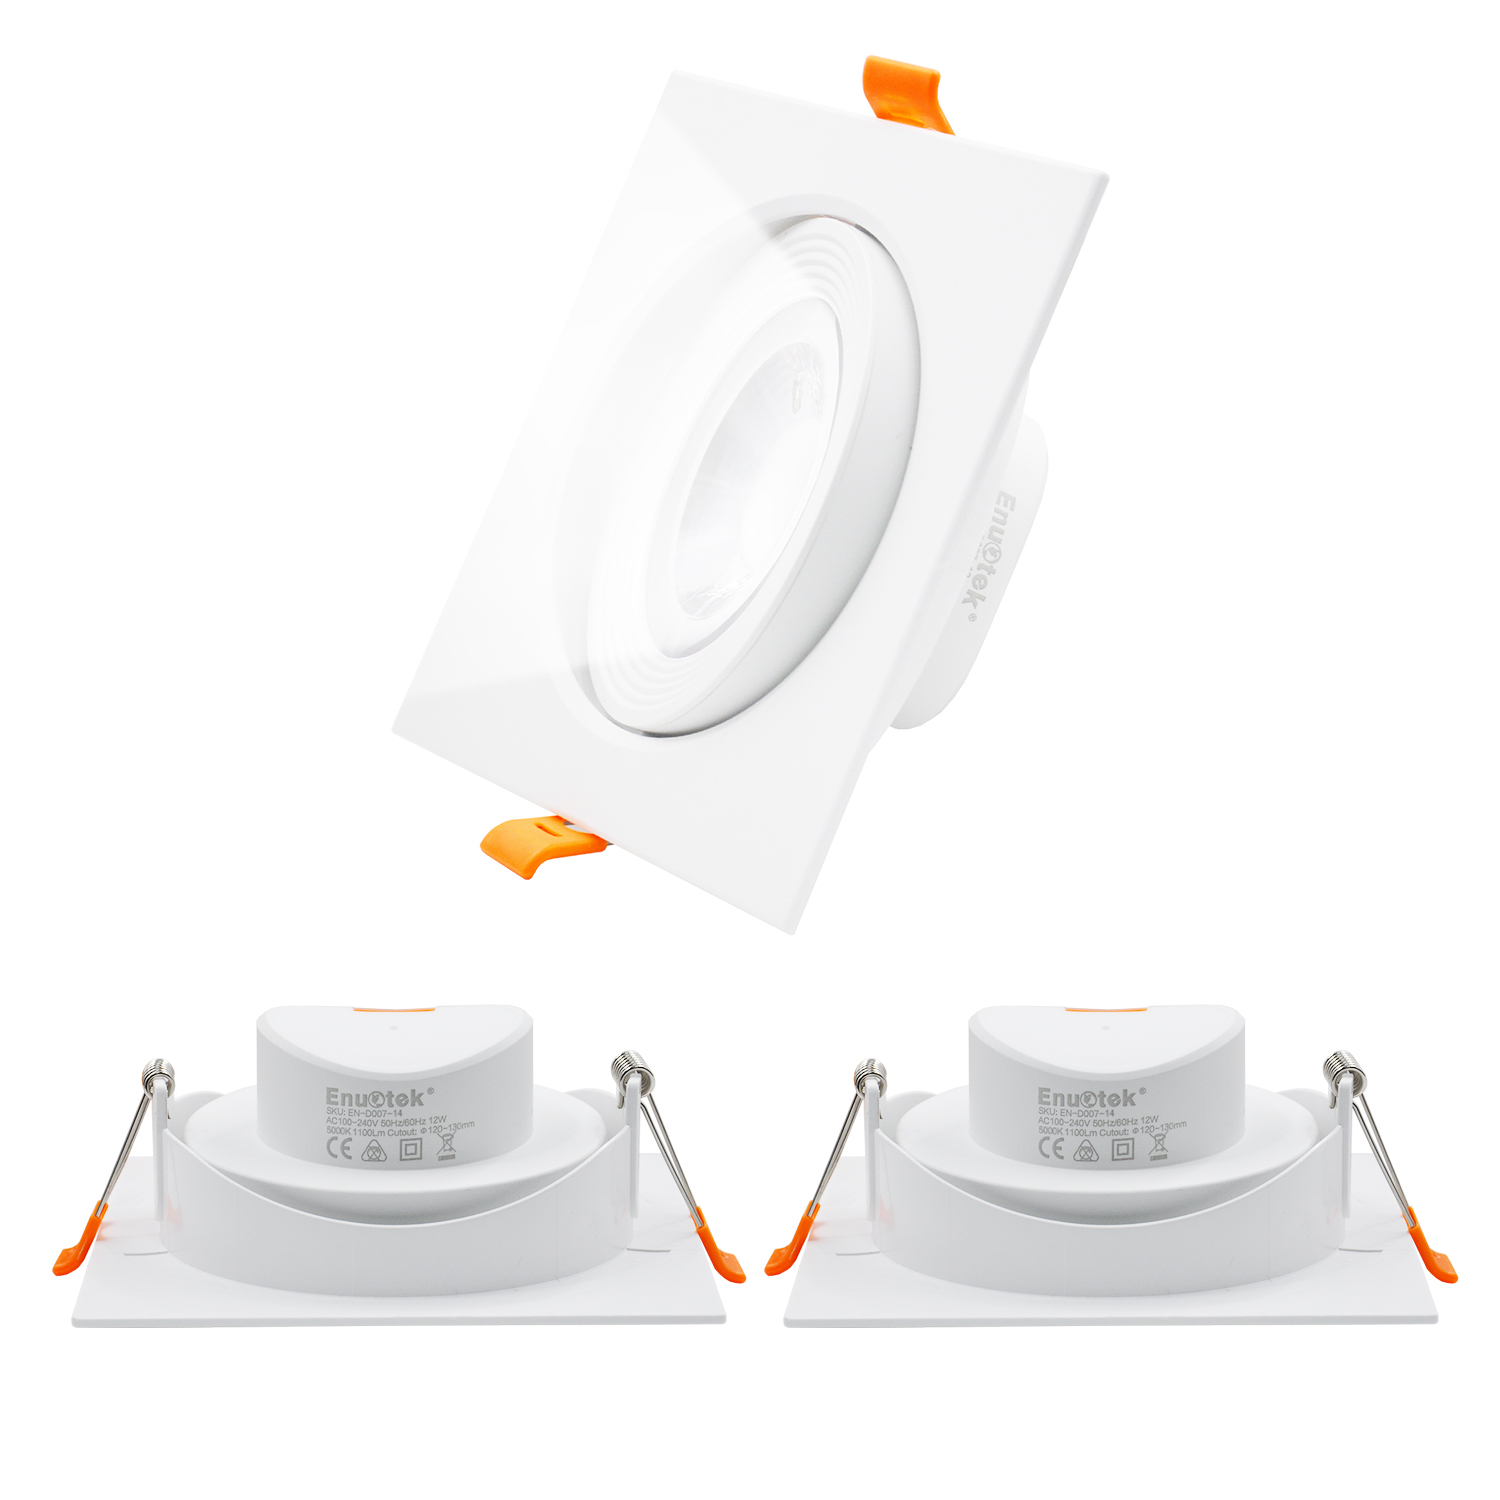 4 Inch Square Recessed Ceiling LED Down Lights Directional 12W with Built-in Driver LED Spotlights Cool White 5000K Halogen Bulbs Equivalent Cut Hole Diameter 120-130MM AC100~240V, 3 Pack by Enuotek